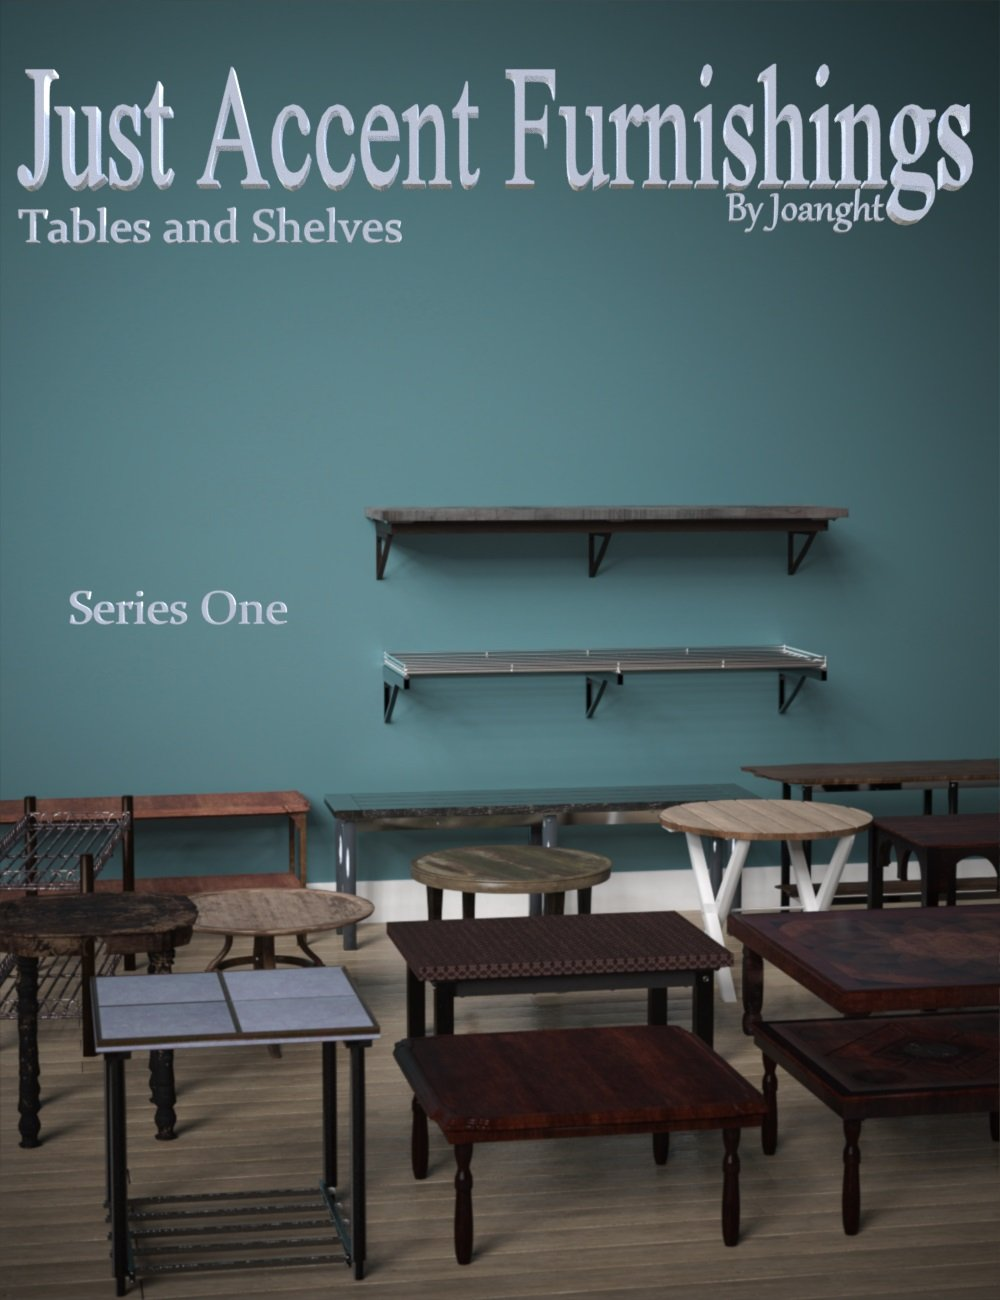 Just Accent Tables and Shelves Series 1 by: Joanght, 3D Models by Daz 3D